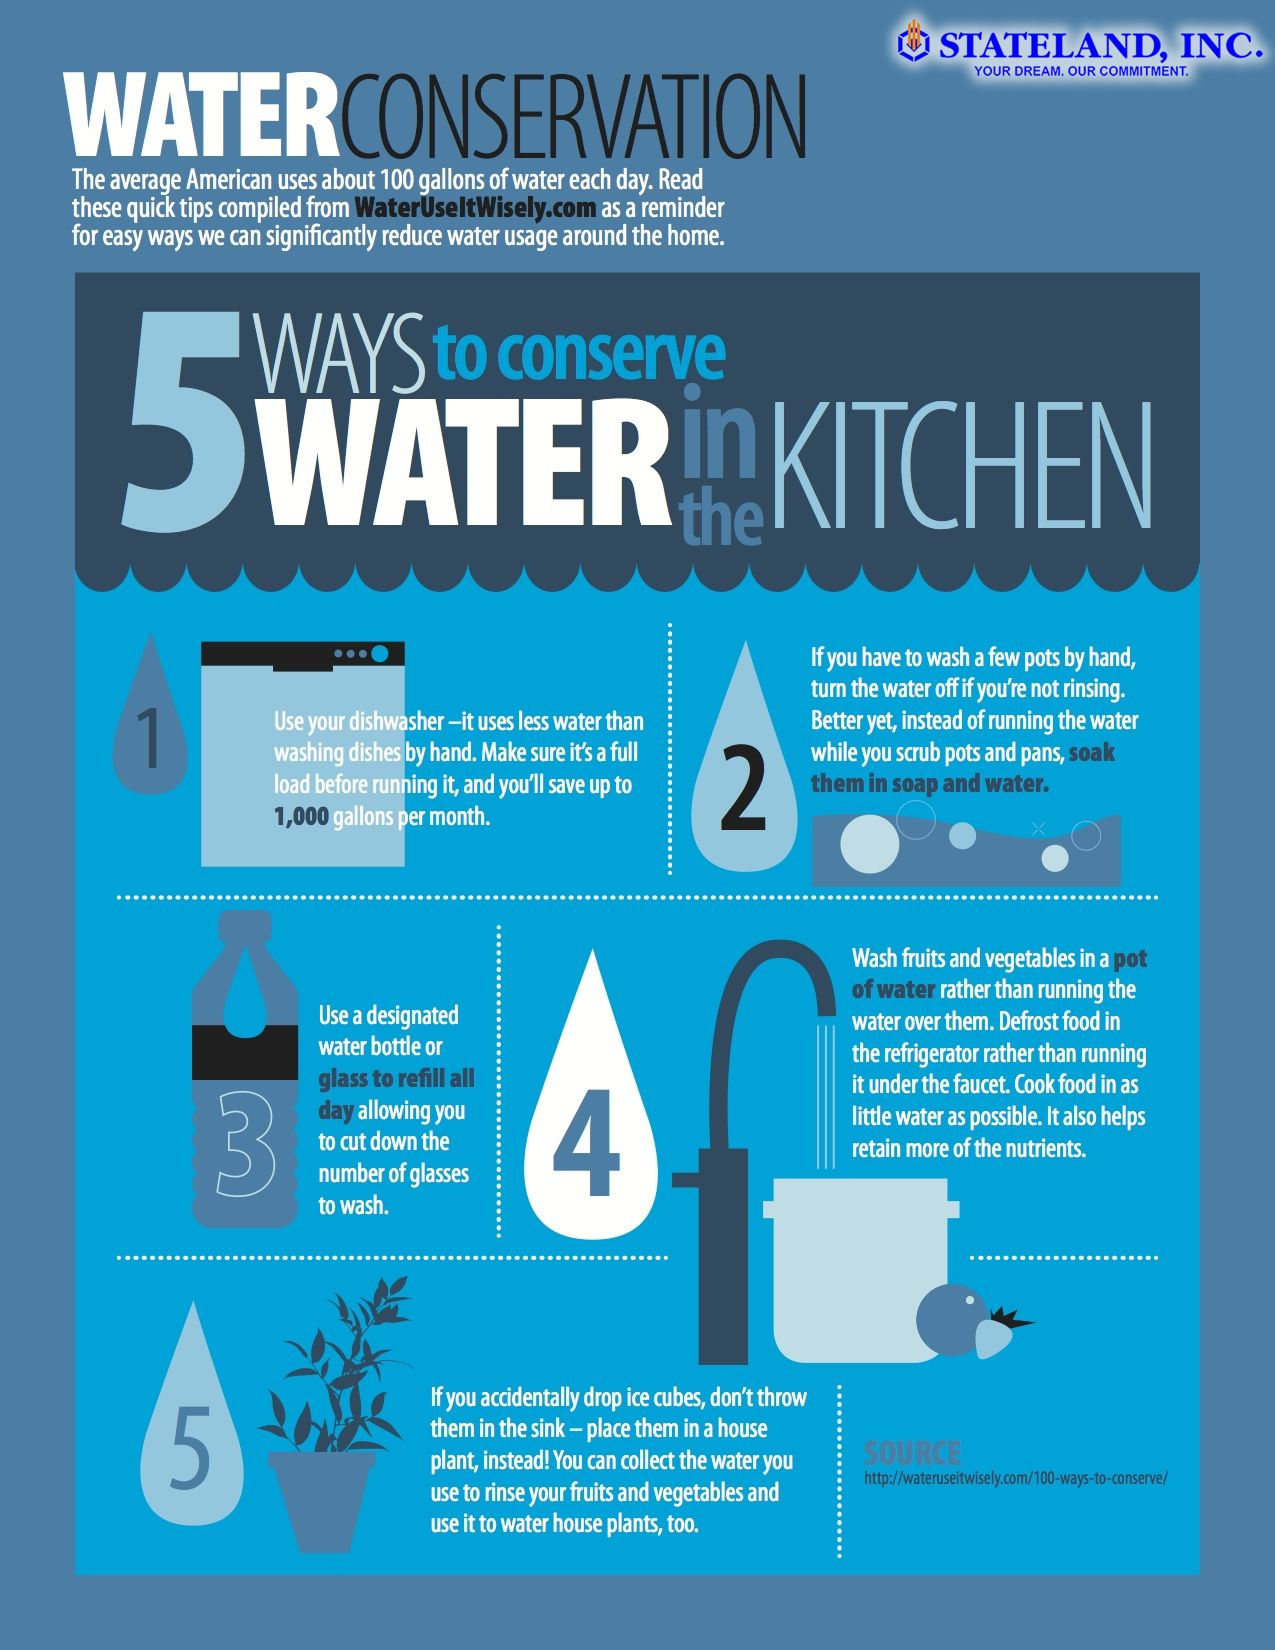 5 Ways To Conserve Water In The Kitchen